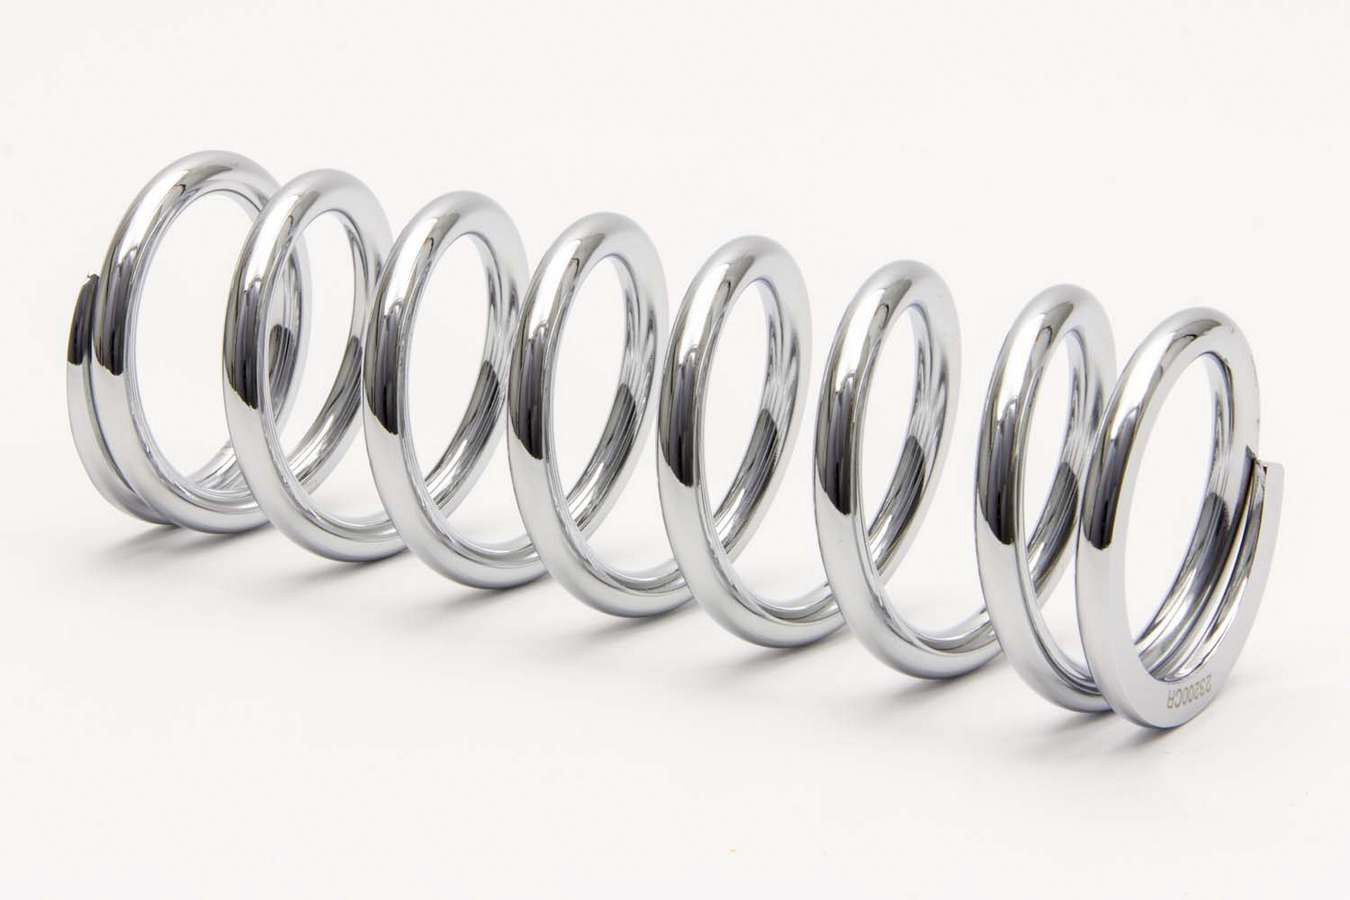 Afco Racing Products Coil-Over Hot Rod Spring 10in x 200#